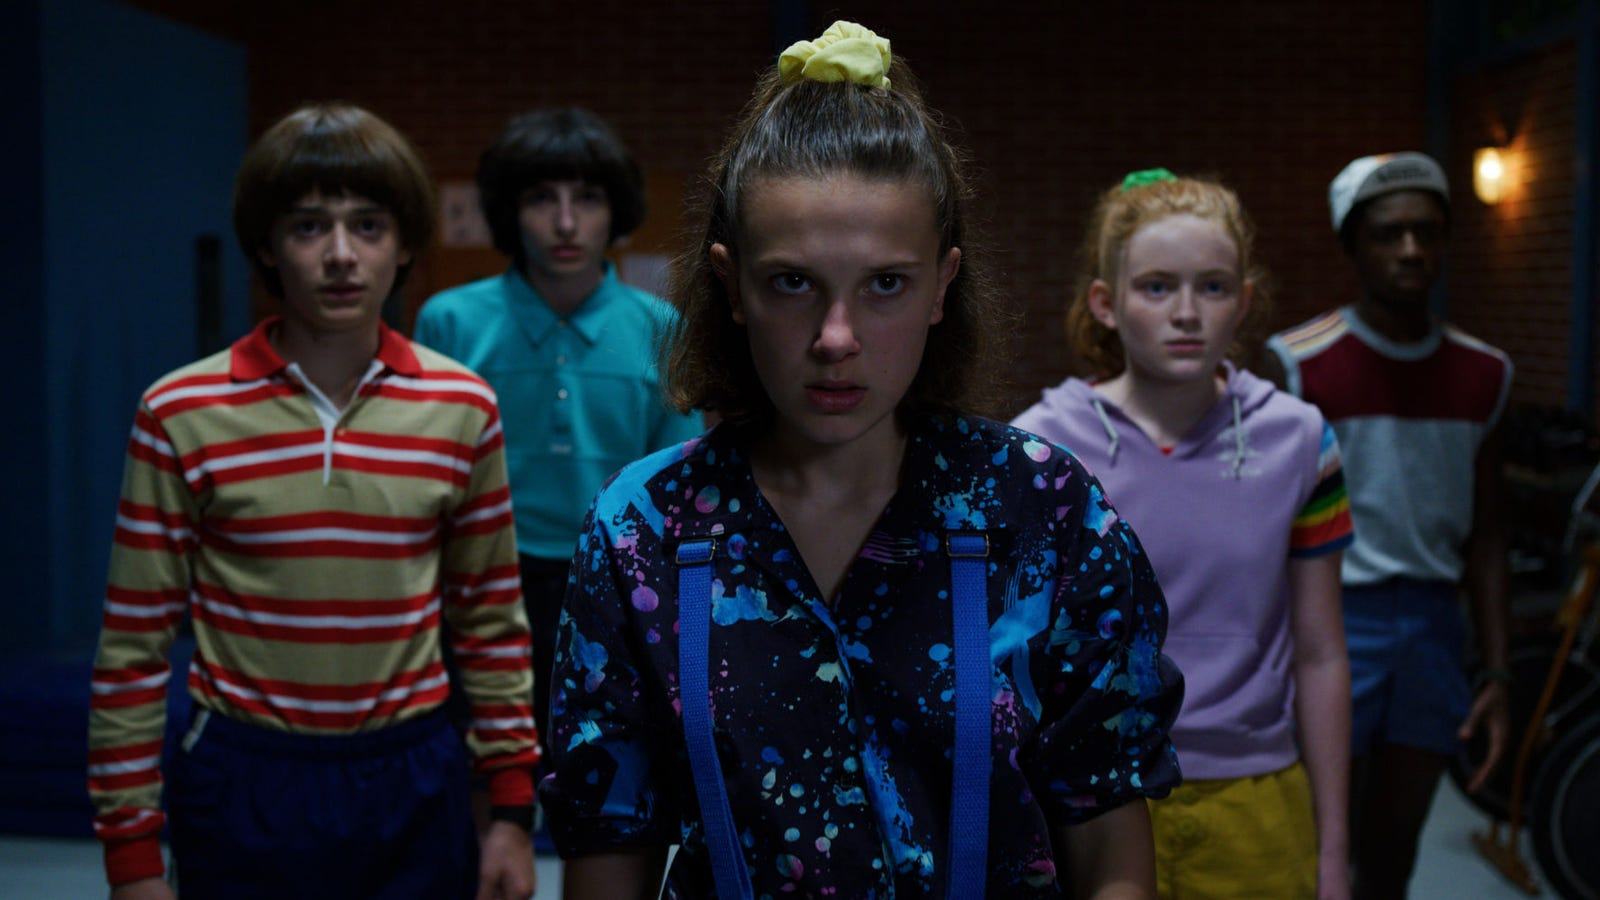 17 Things We Loved About Stranger Things 3 (And 6 We Didn't)